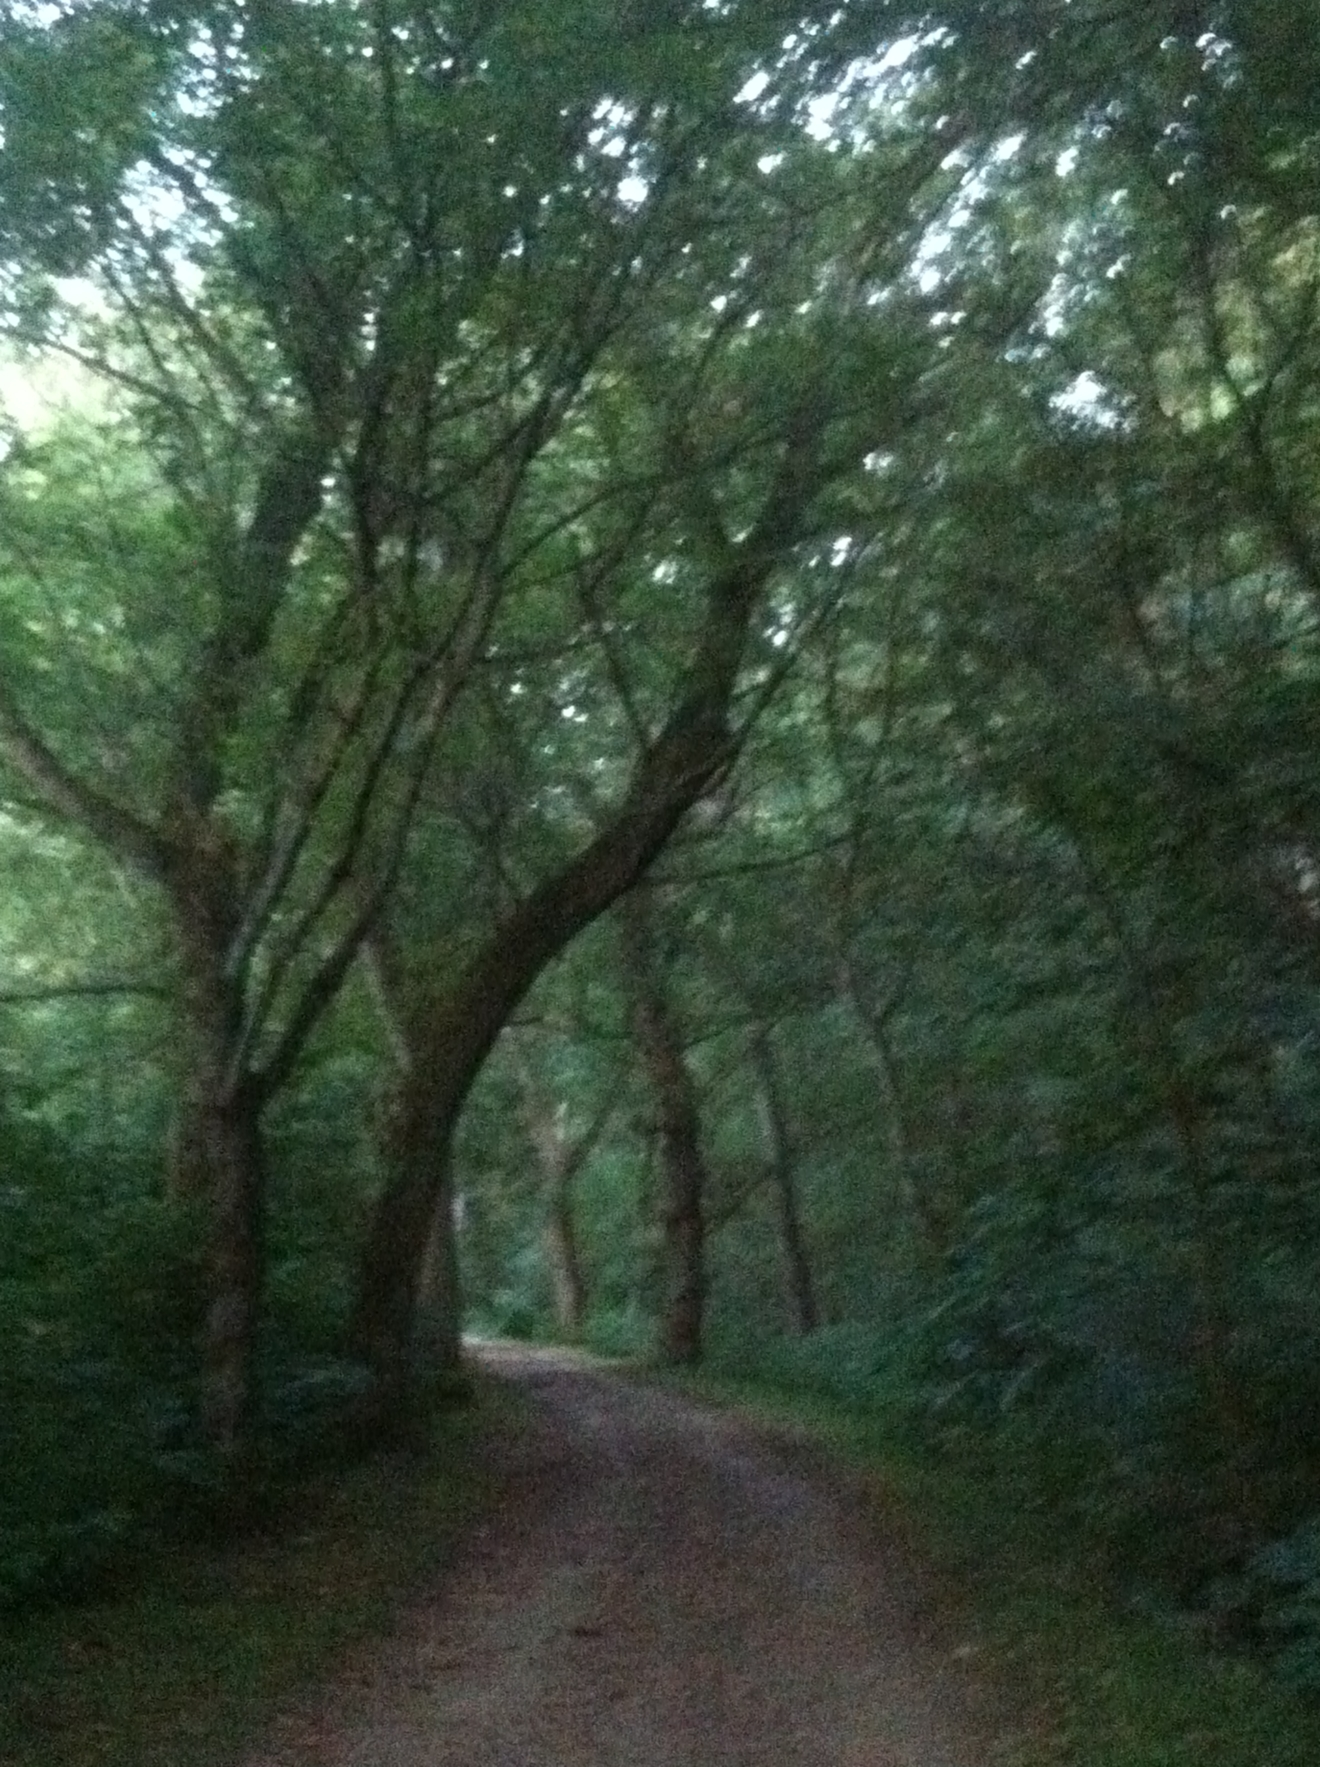 paving the way, setting out on your path of self-healing